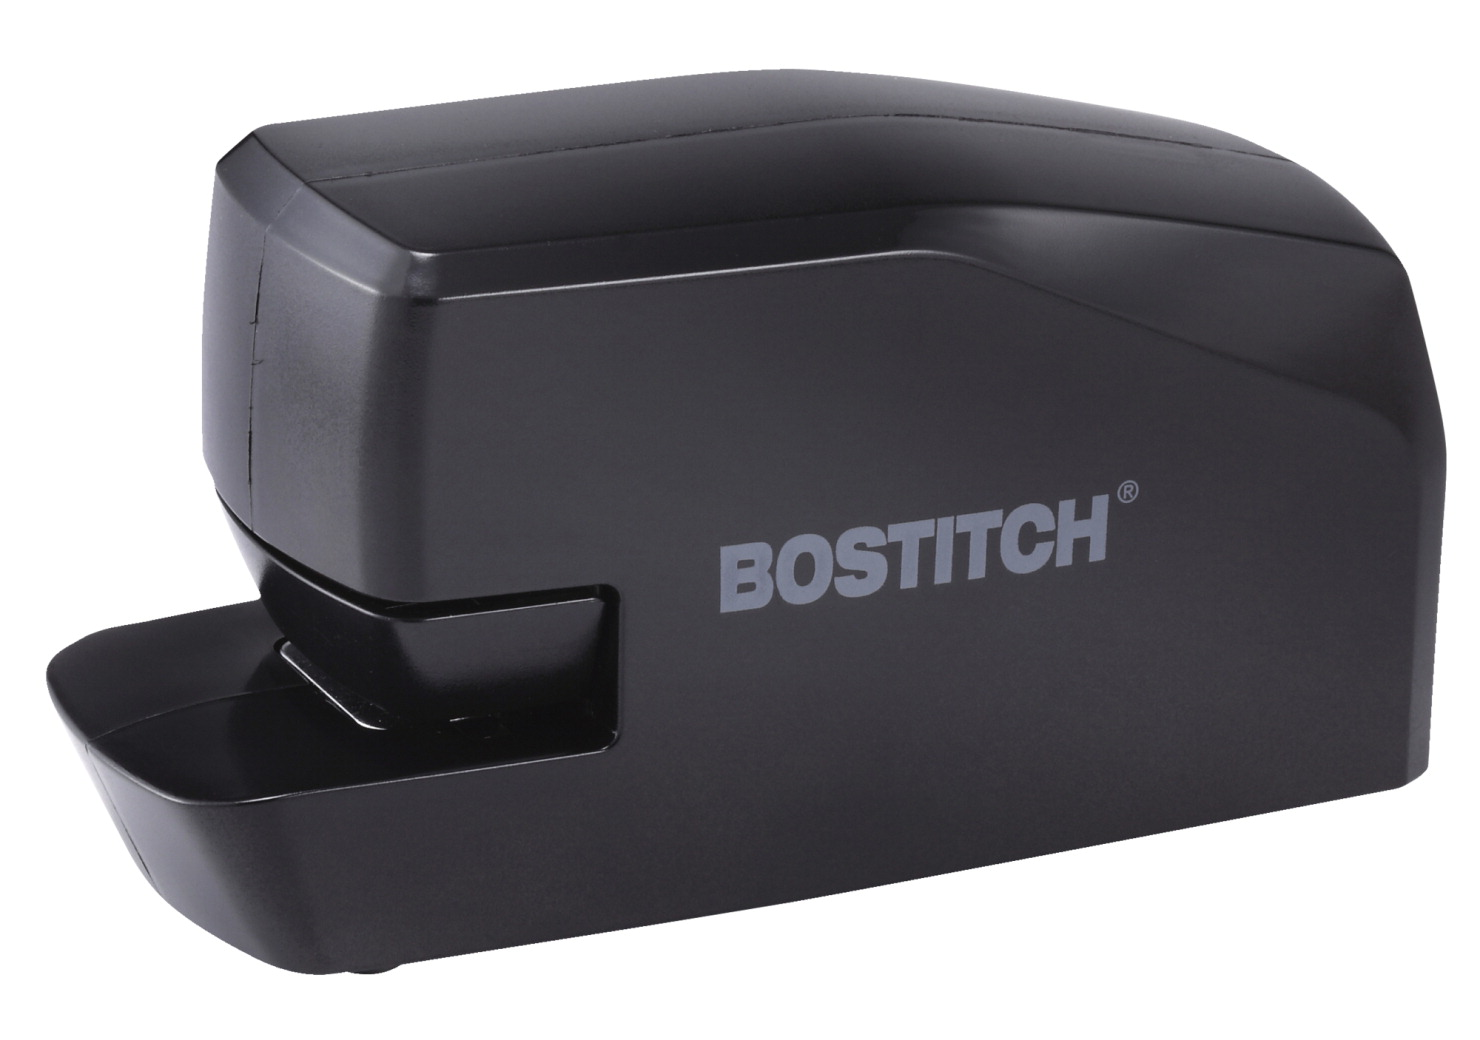 bostitch battery operated electric stapler black soar life products